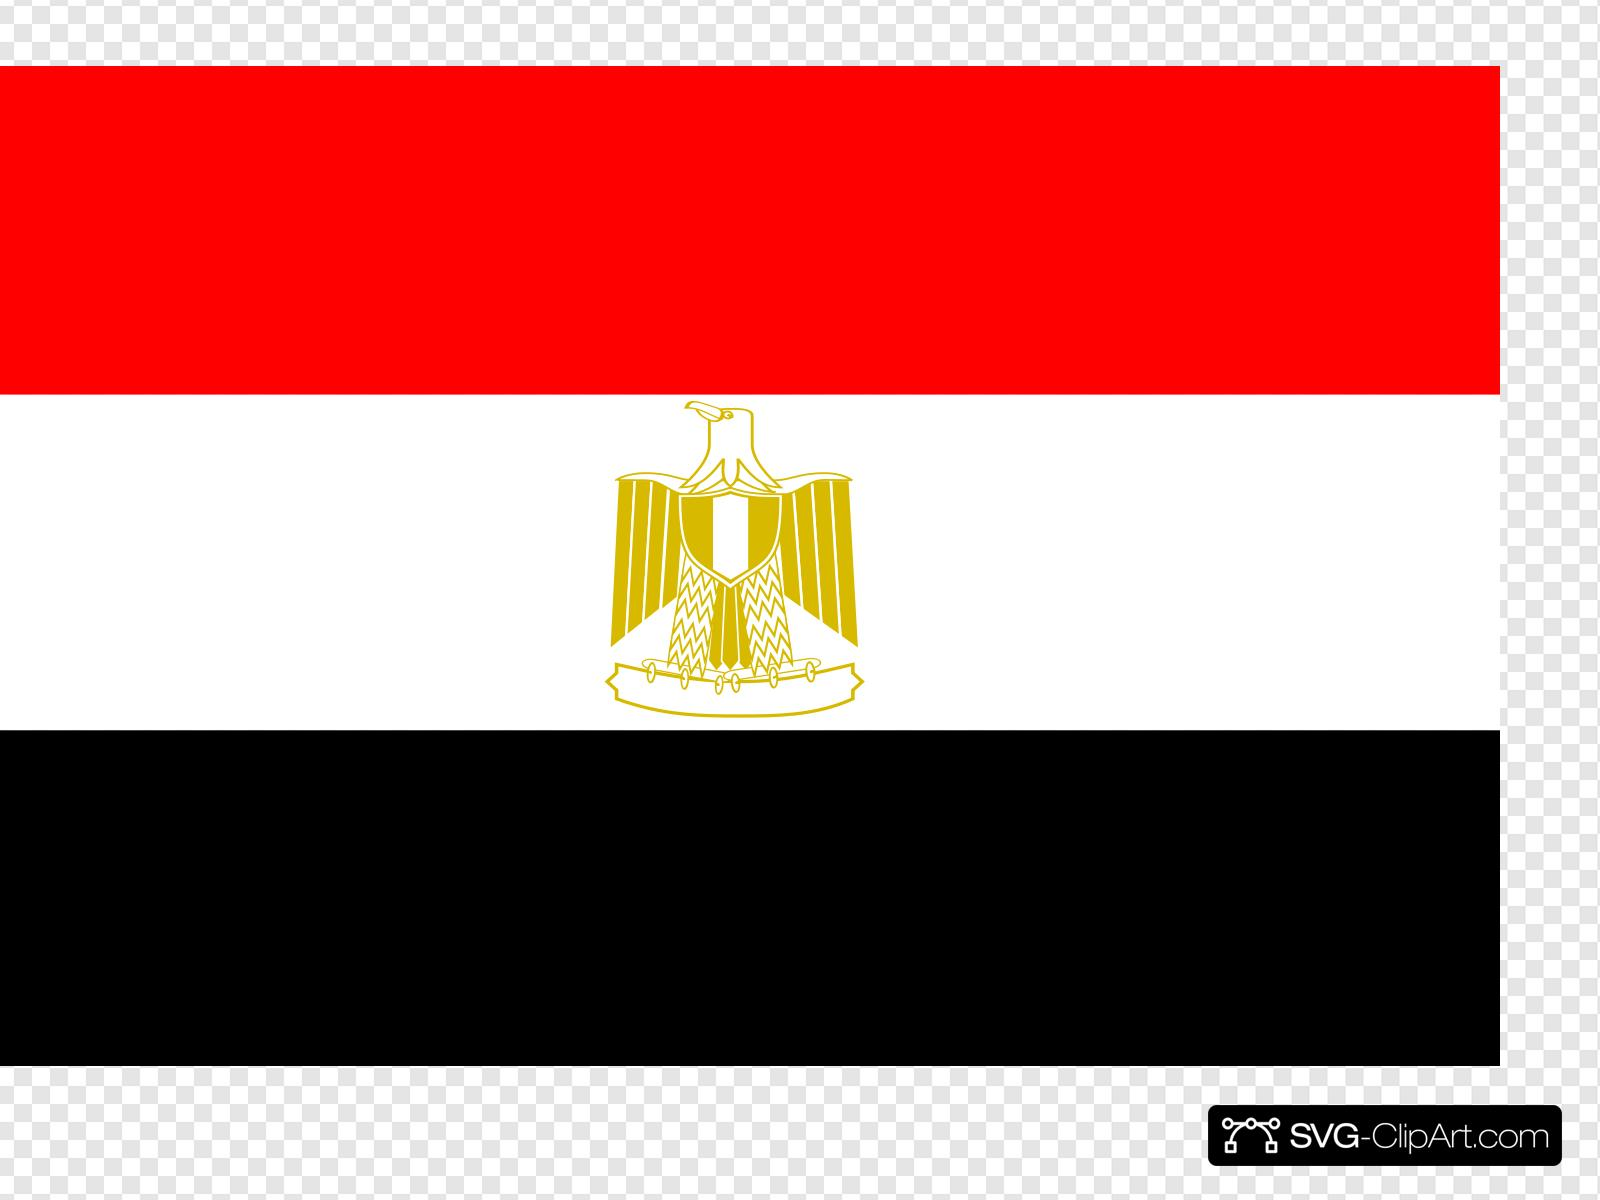 Egypt Clip art, Icon and SVG.